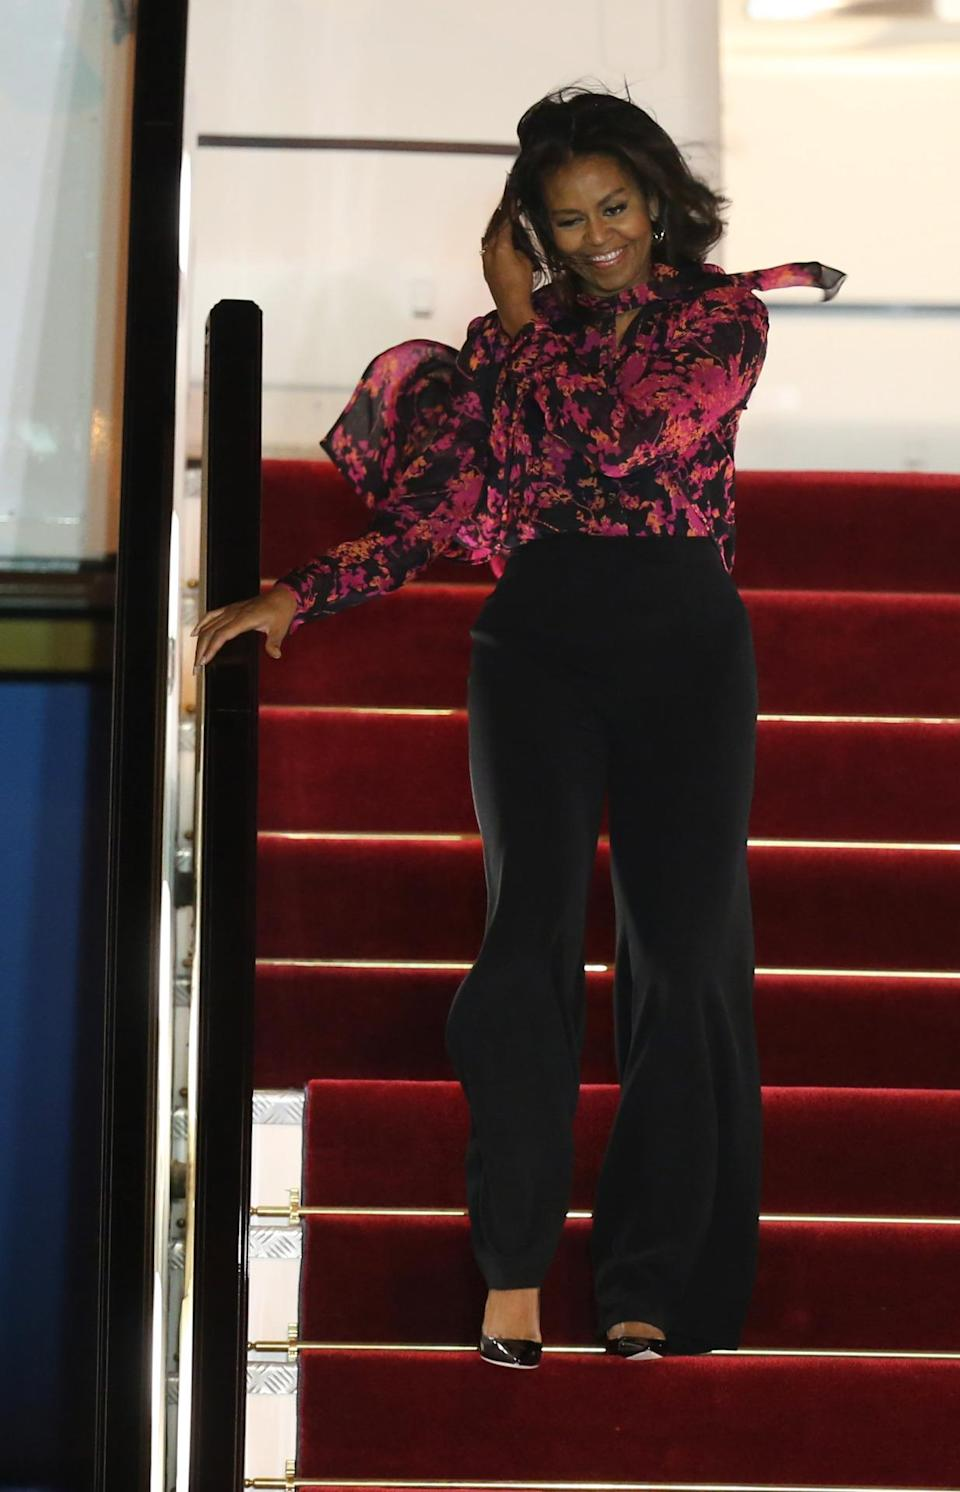 <p>The first lady showed that flying outfits can be both chic and comfortable in a floral blouse and black high-waisted flares. You better believe she kicked her patent heels off on Air Force One during the long journey. <i>Photo: AP</i></p>